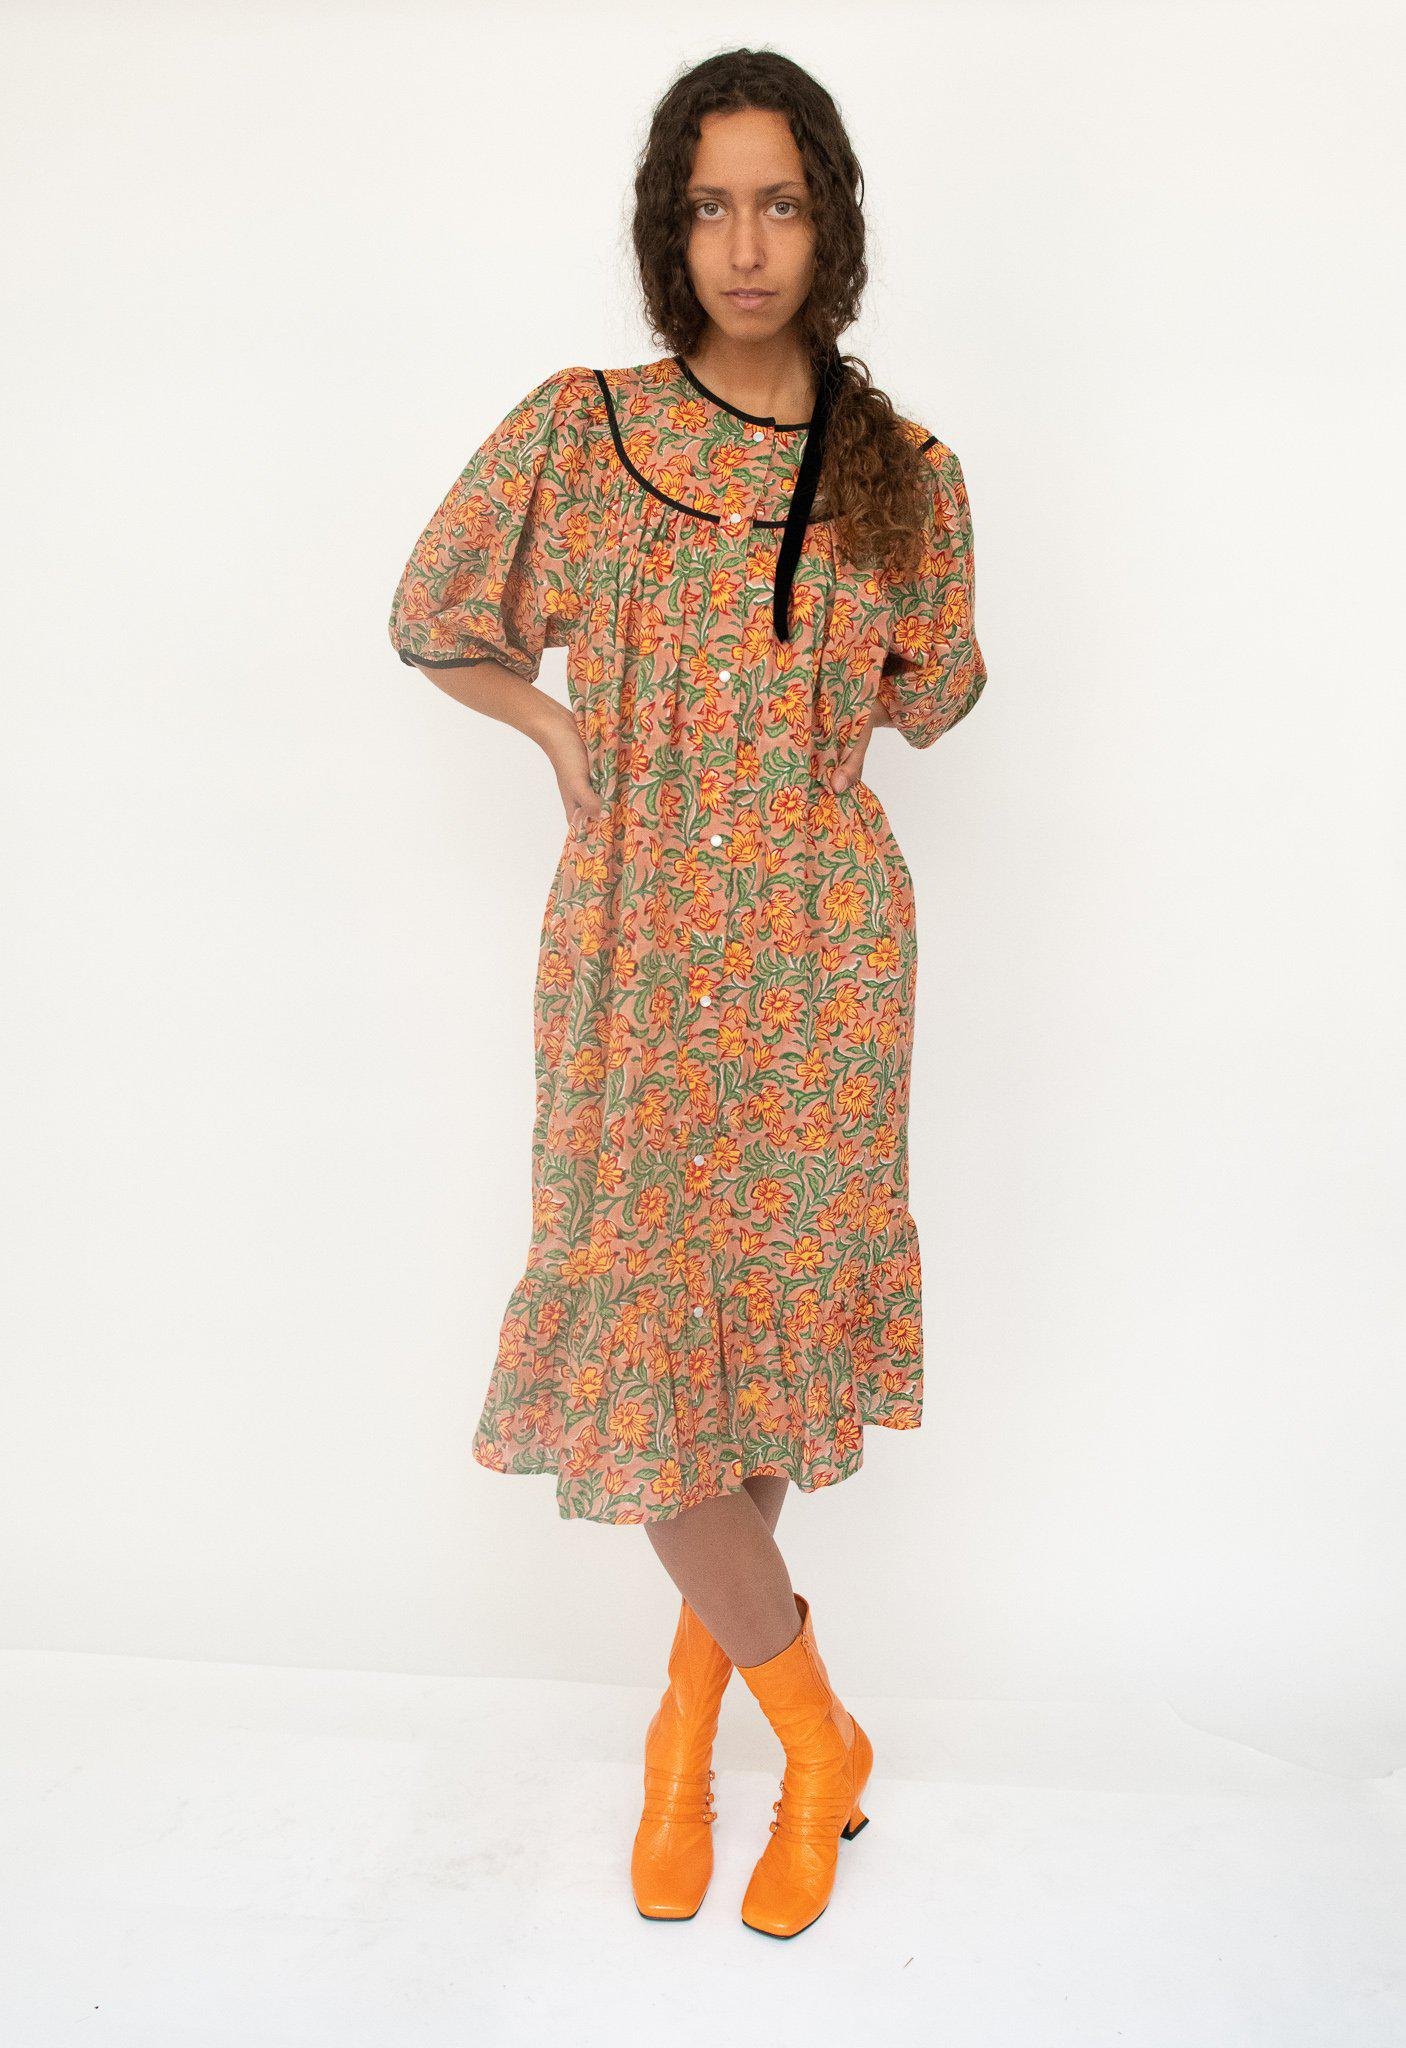 Snap Housedress in Light Brown Floral